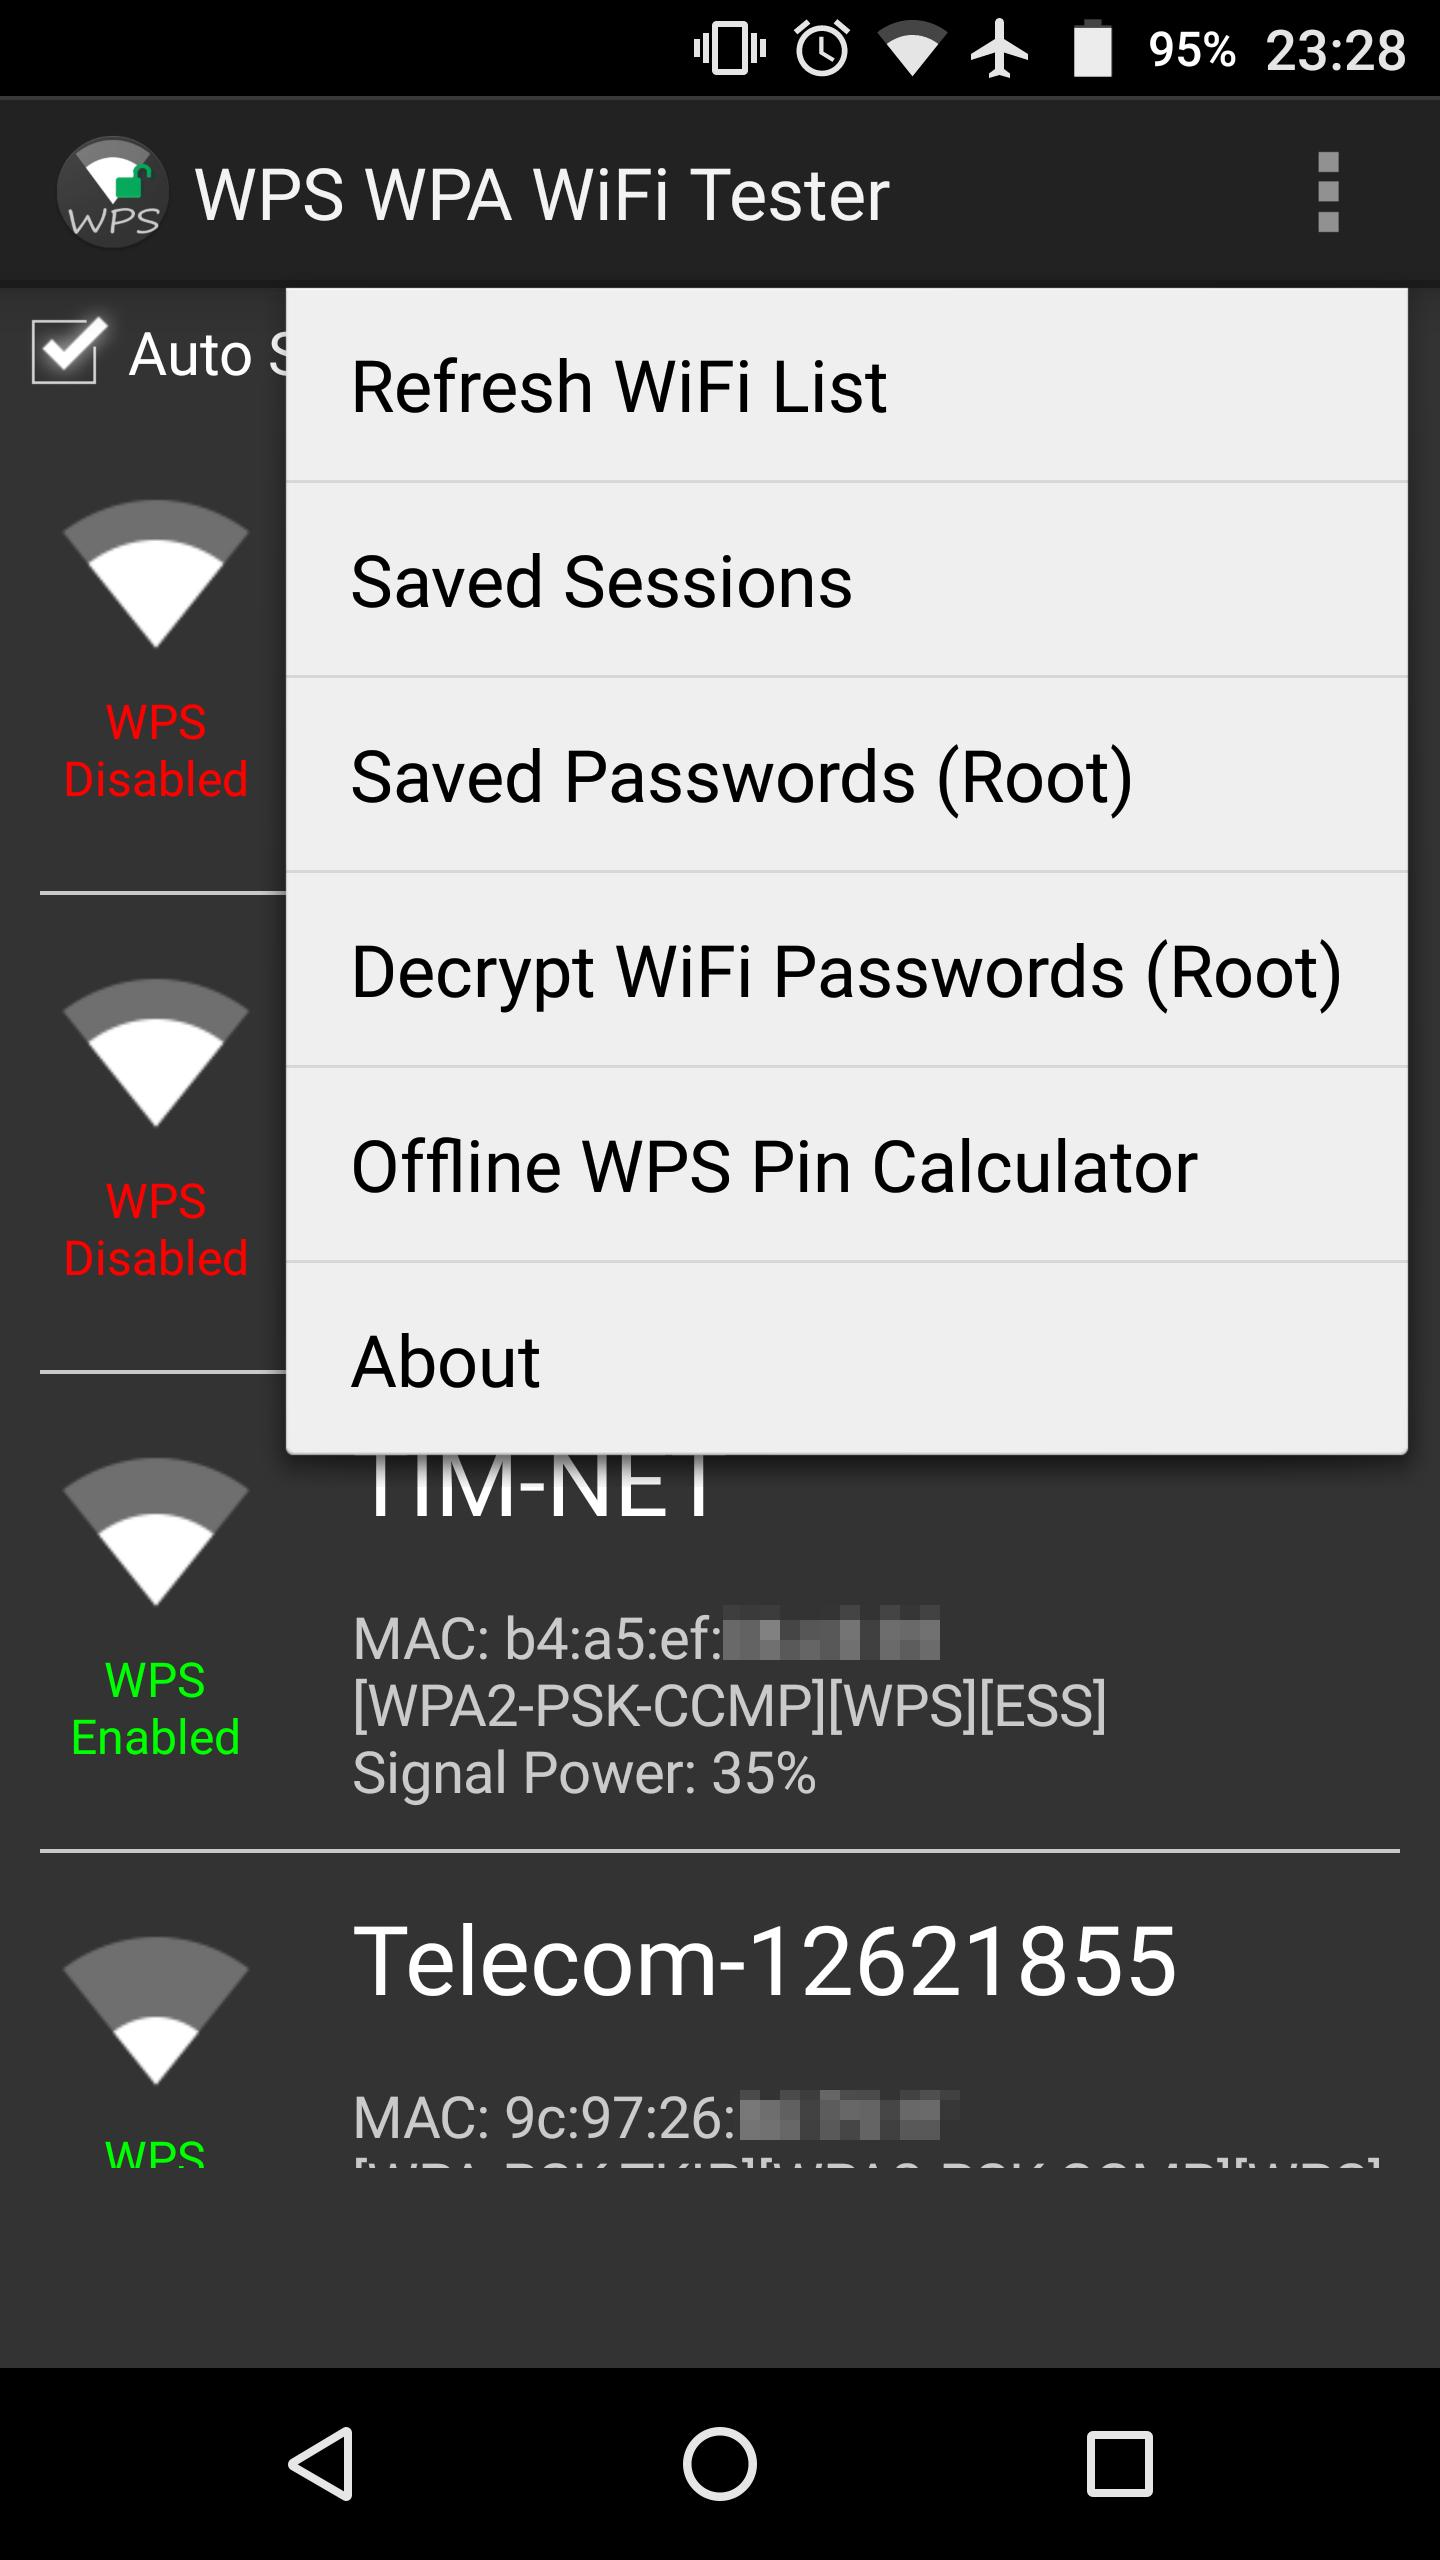 WPS WPA WiFi Tester for Android - APK Download